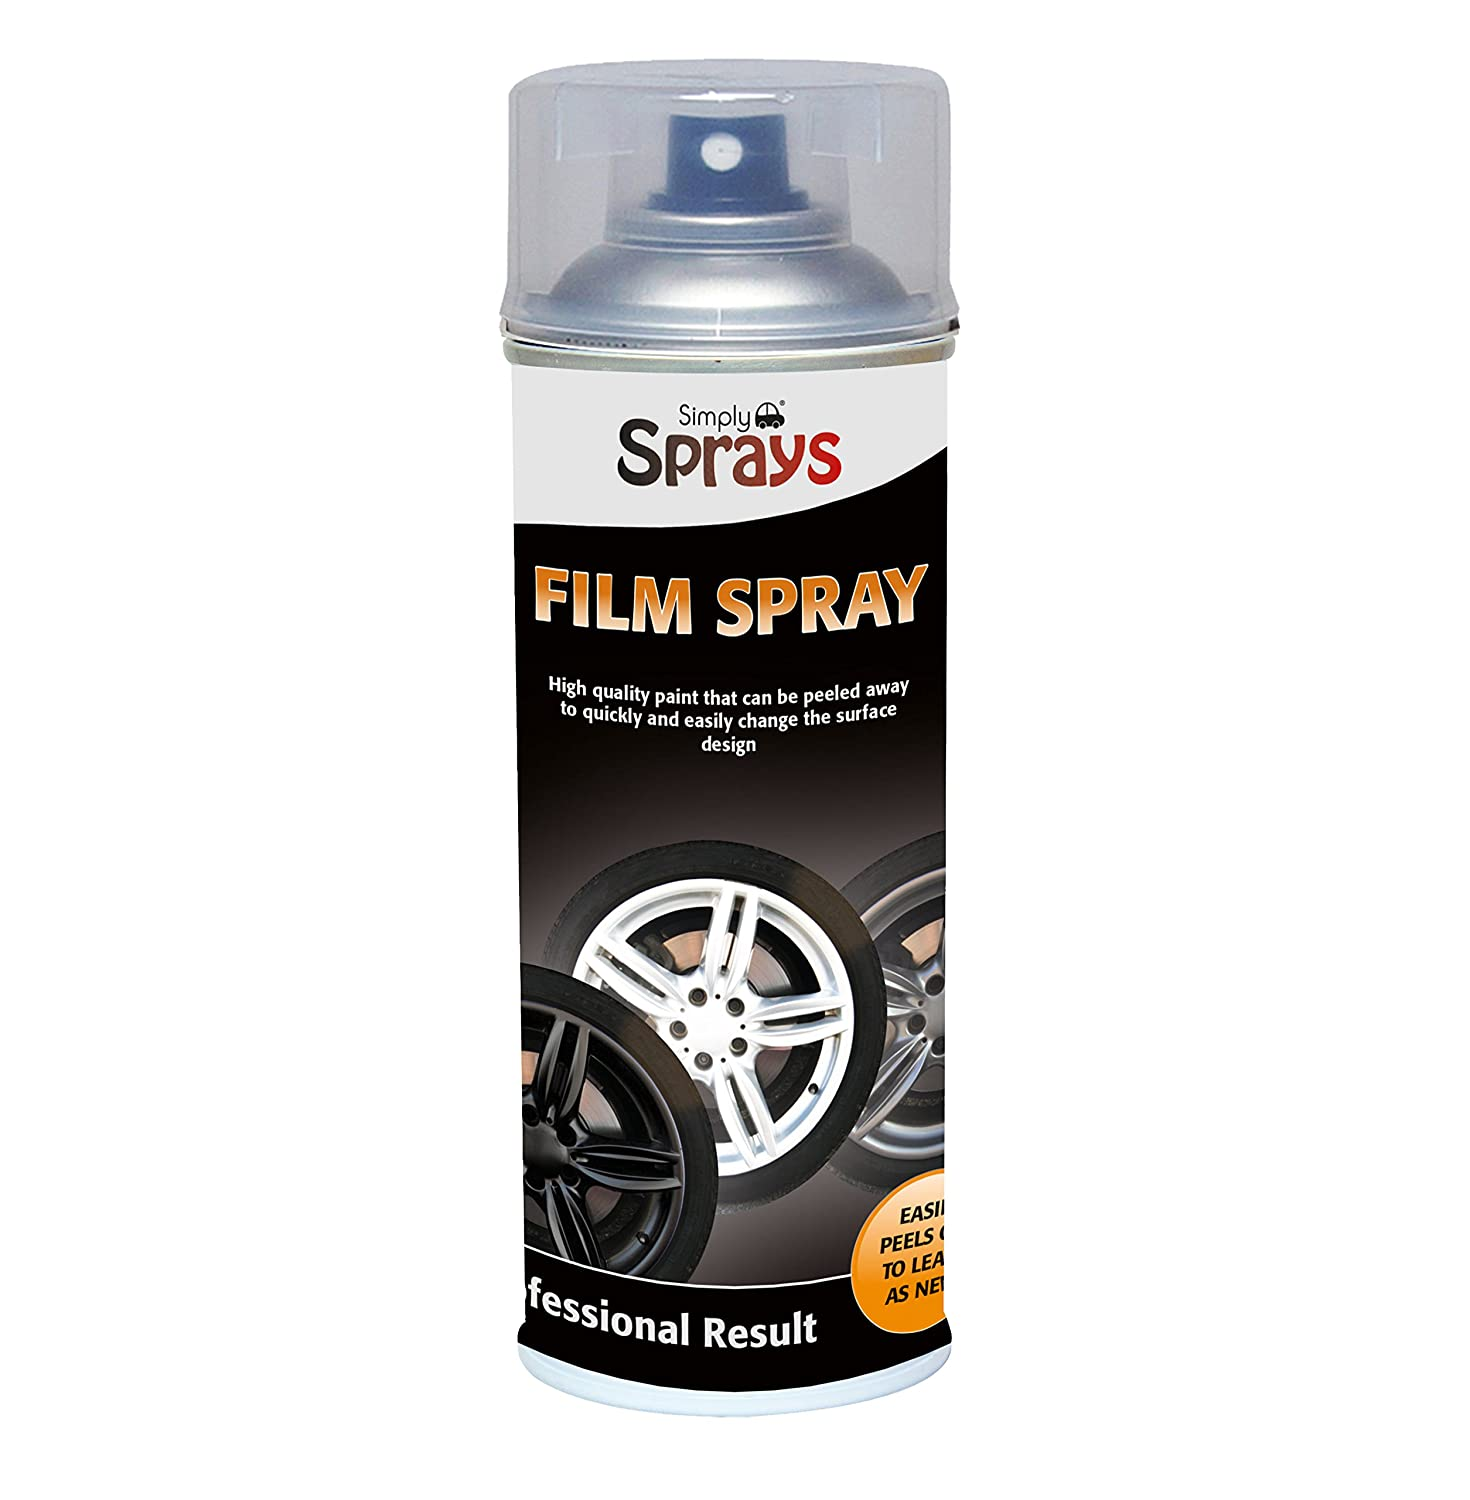 Simply SP-041 Car Silver Film Spray High Quality Paint Quickly and Easily Change Surface and Can Simply Be Peeled Away, Leaves no Residue for Blank Metal, Paintable Hard Plastics and Glasses 400ML